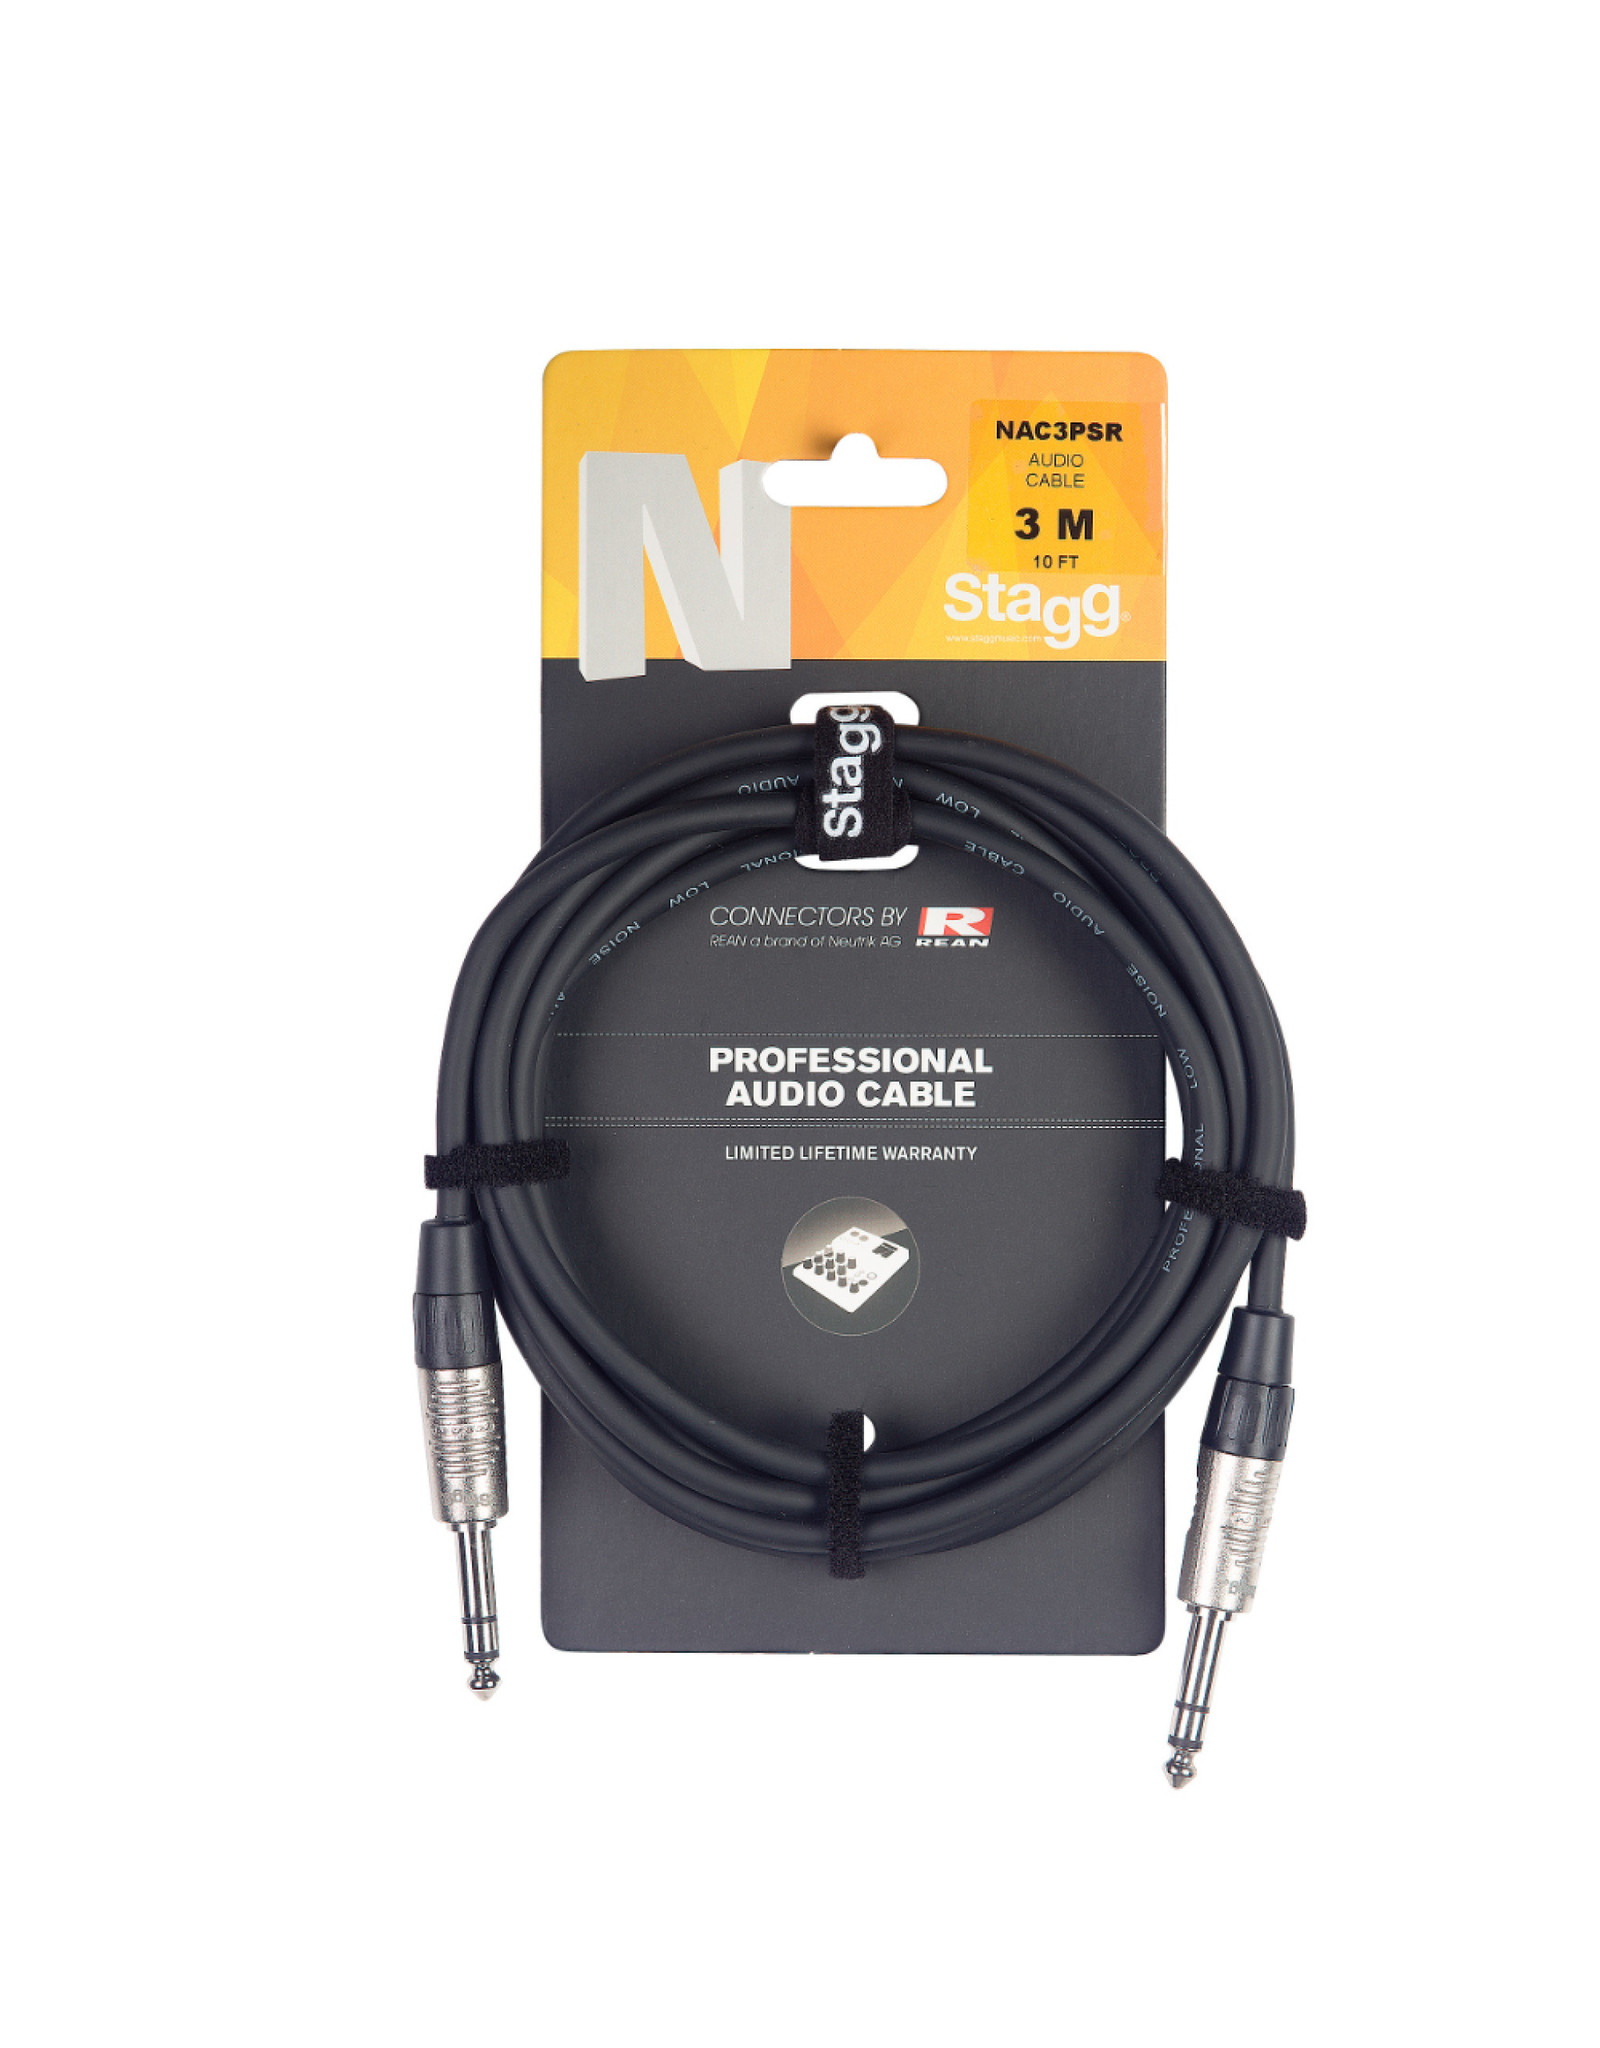 Stagg Stagg N-series Audio Cable 6M 20 Fft